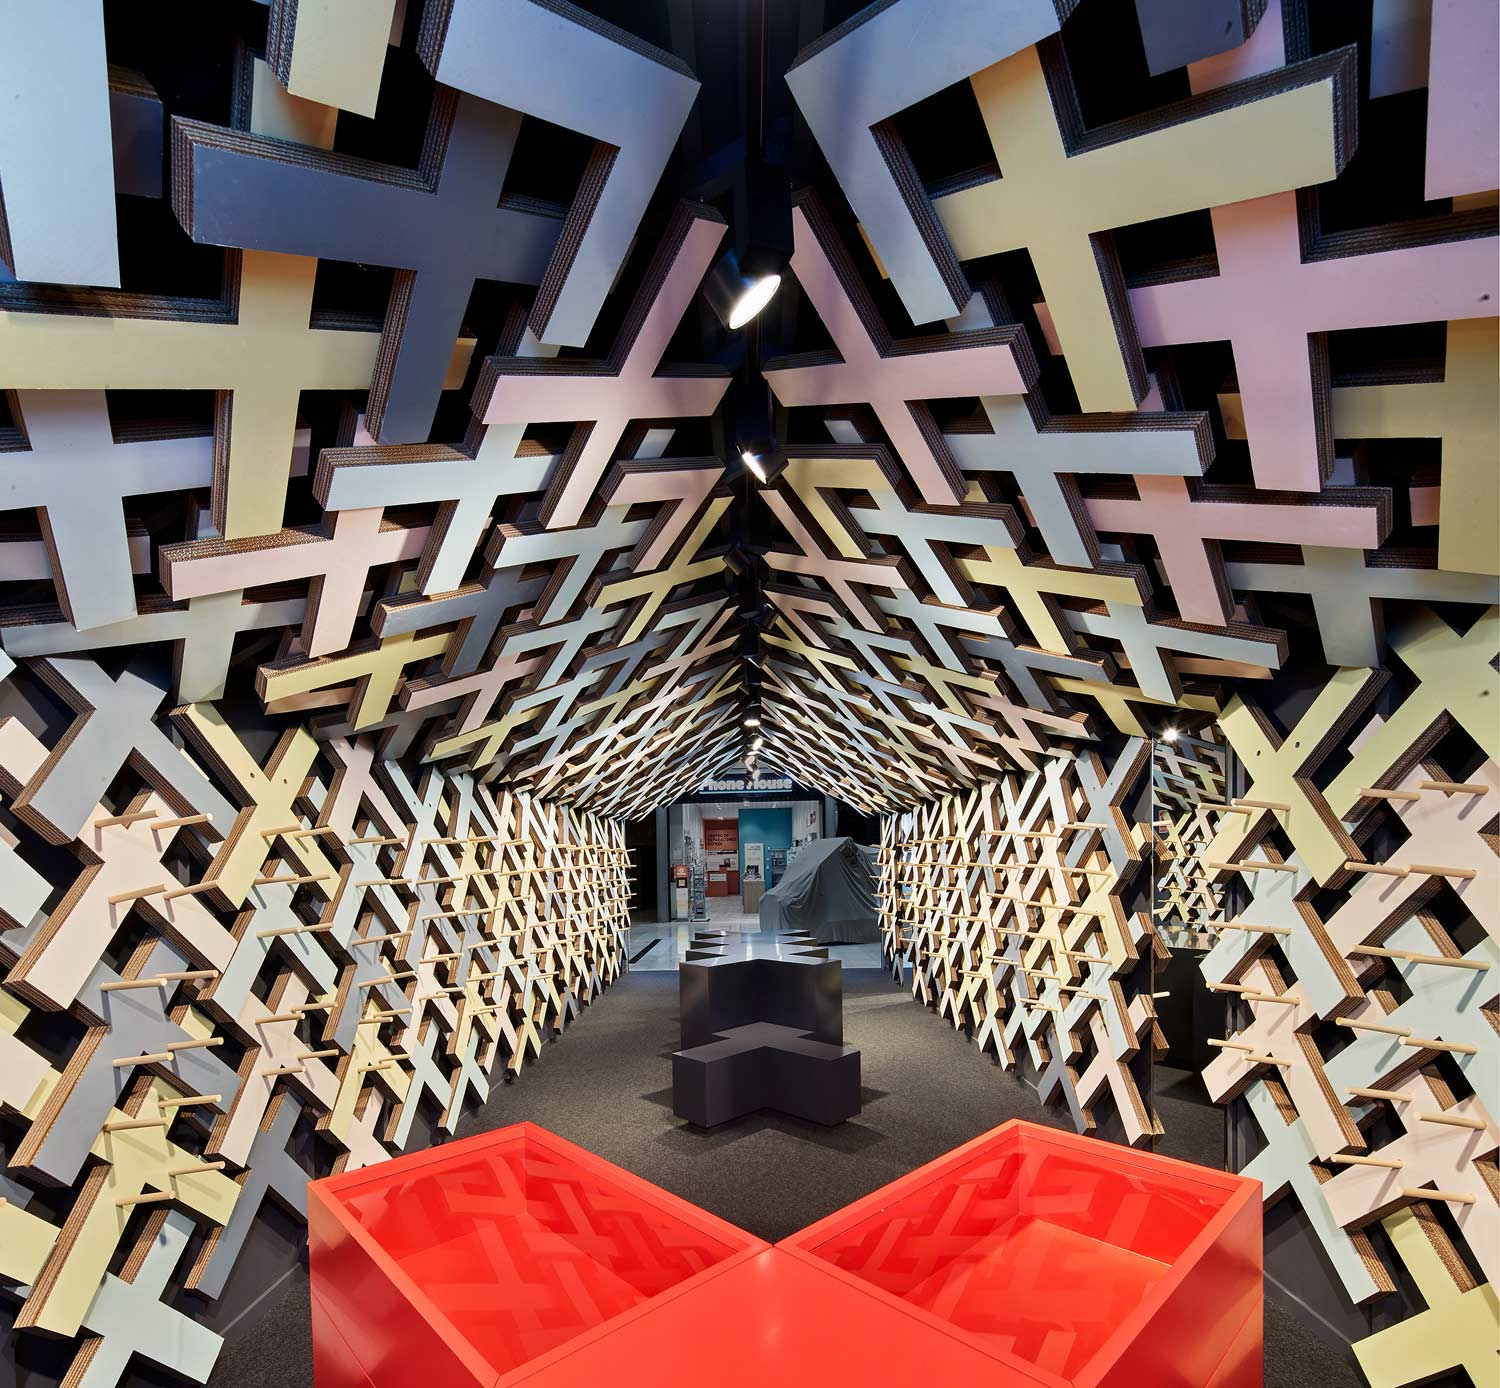 pop-up-design-retail-cardboard-interior-architecture-cartonlab